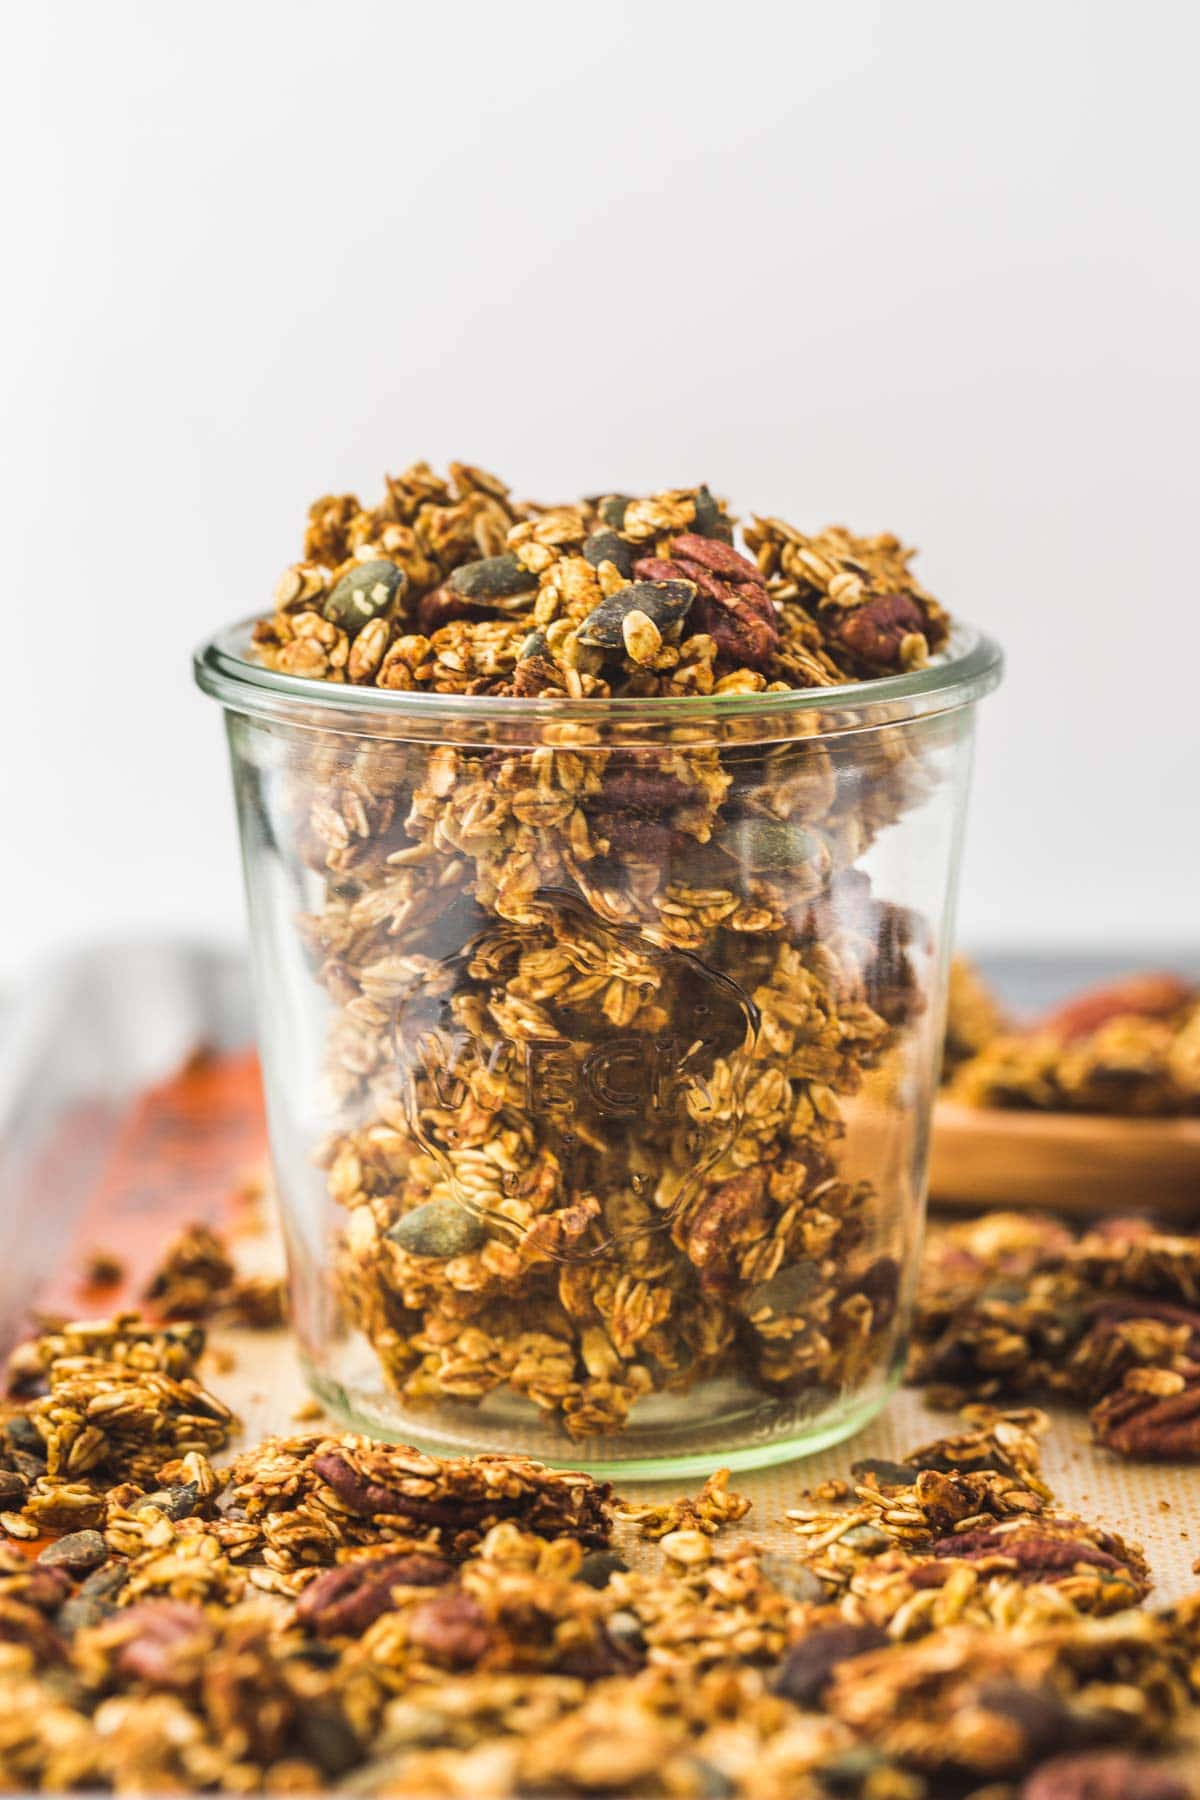 A large Weck jar filled with crunchy granola